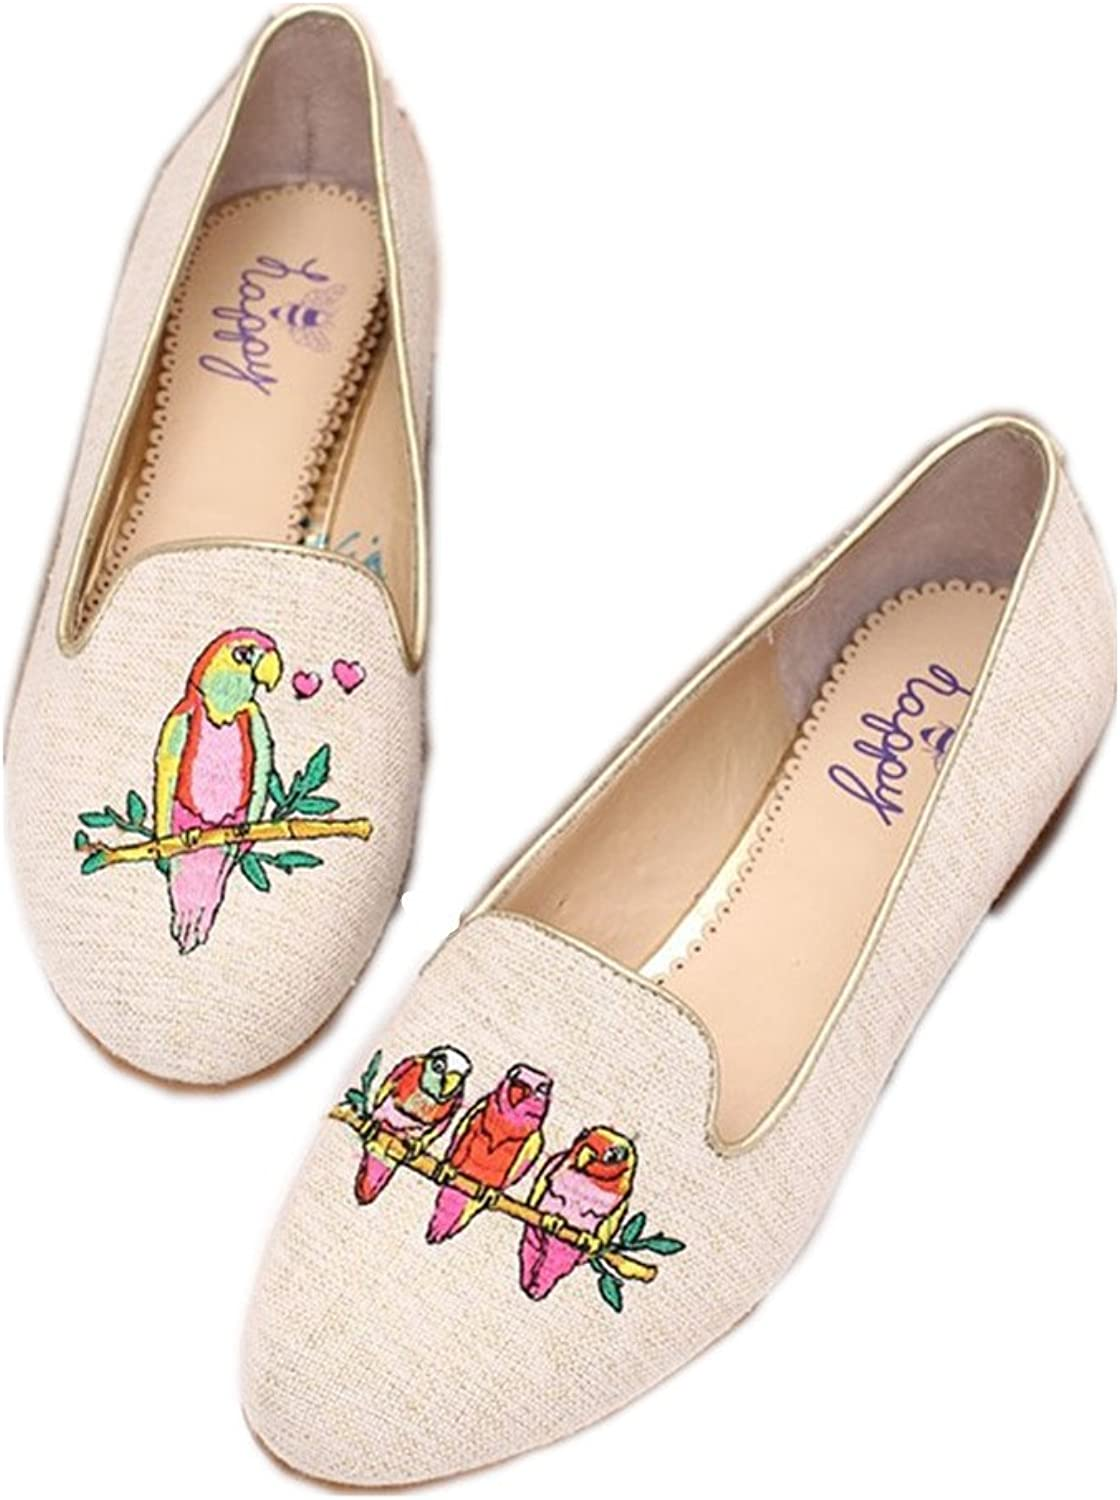 C. Wonder Time Canvas Ladies Slip on Loafers Espadrilles Flats White